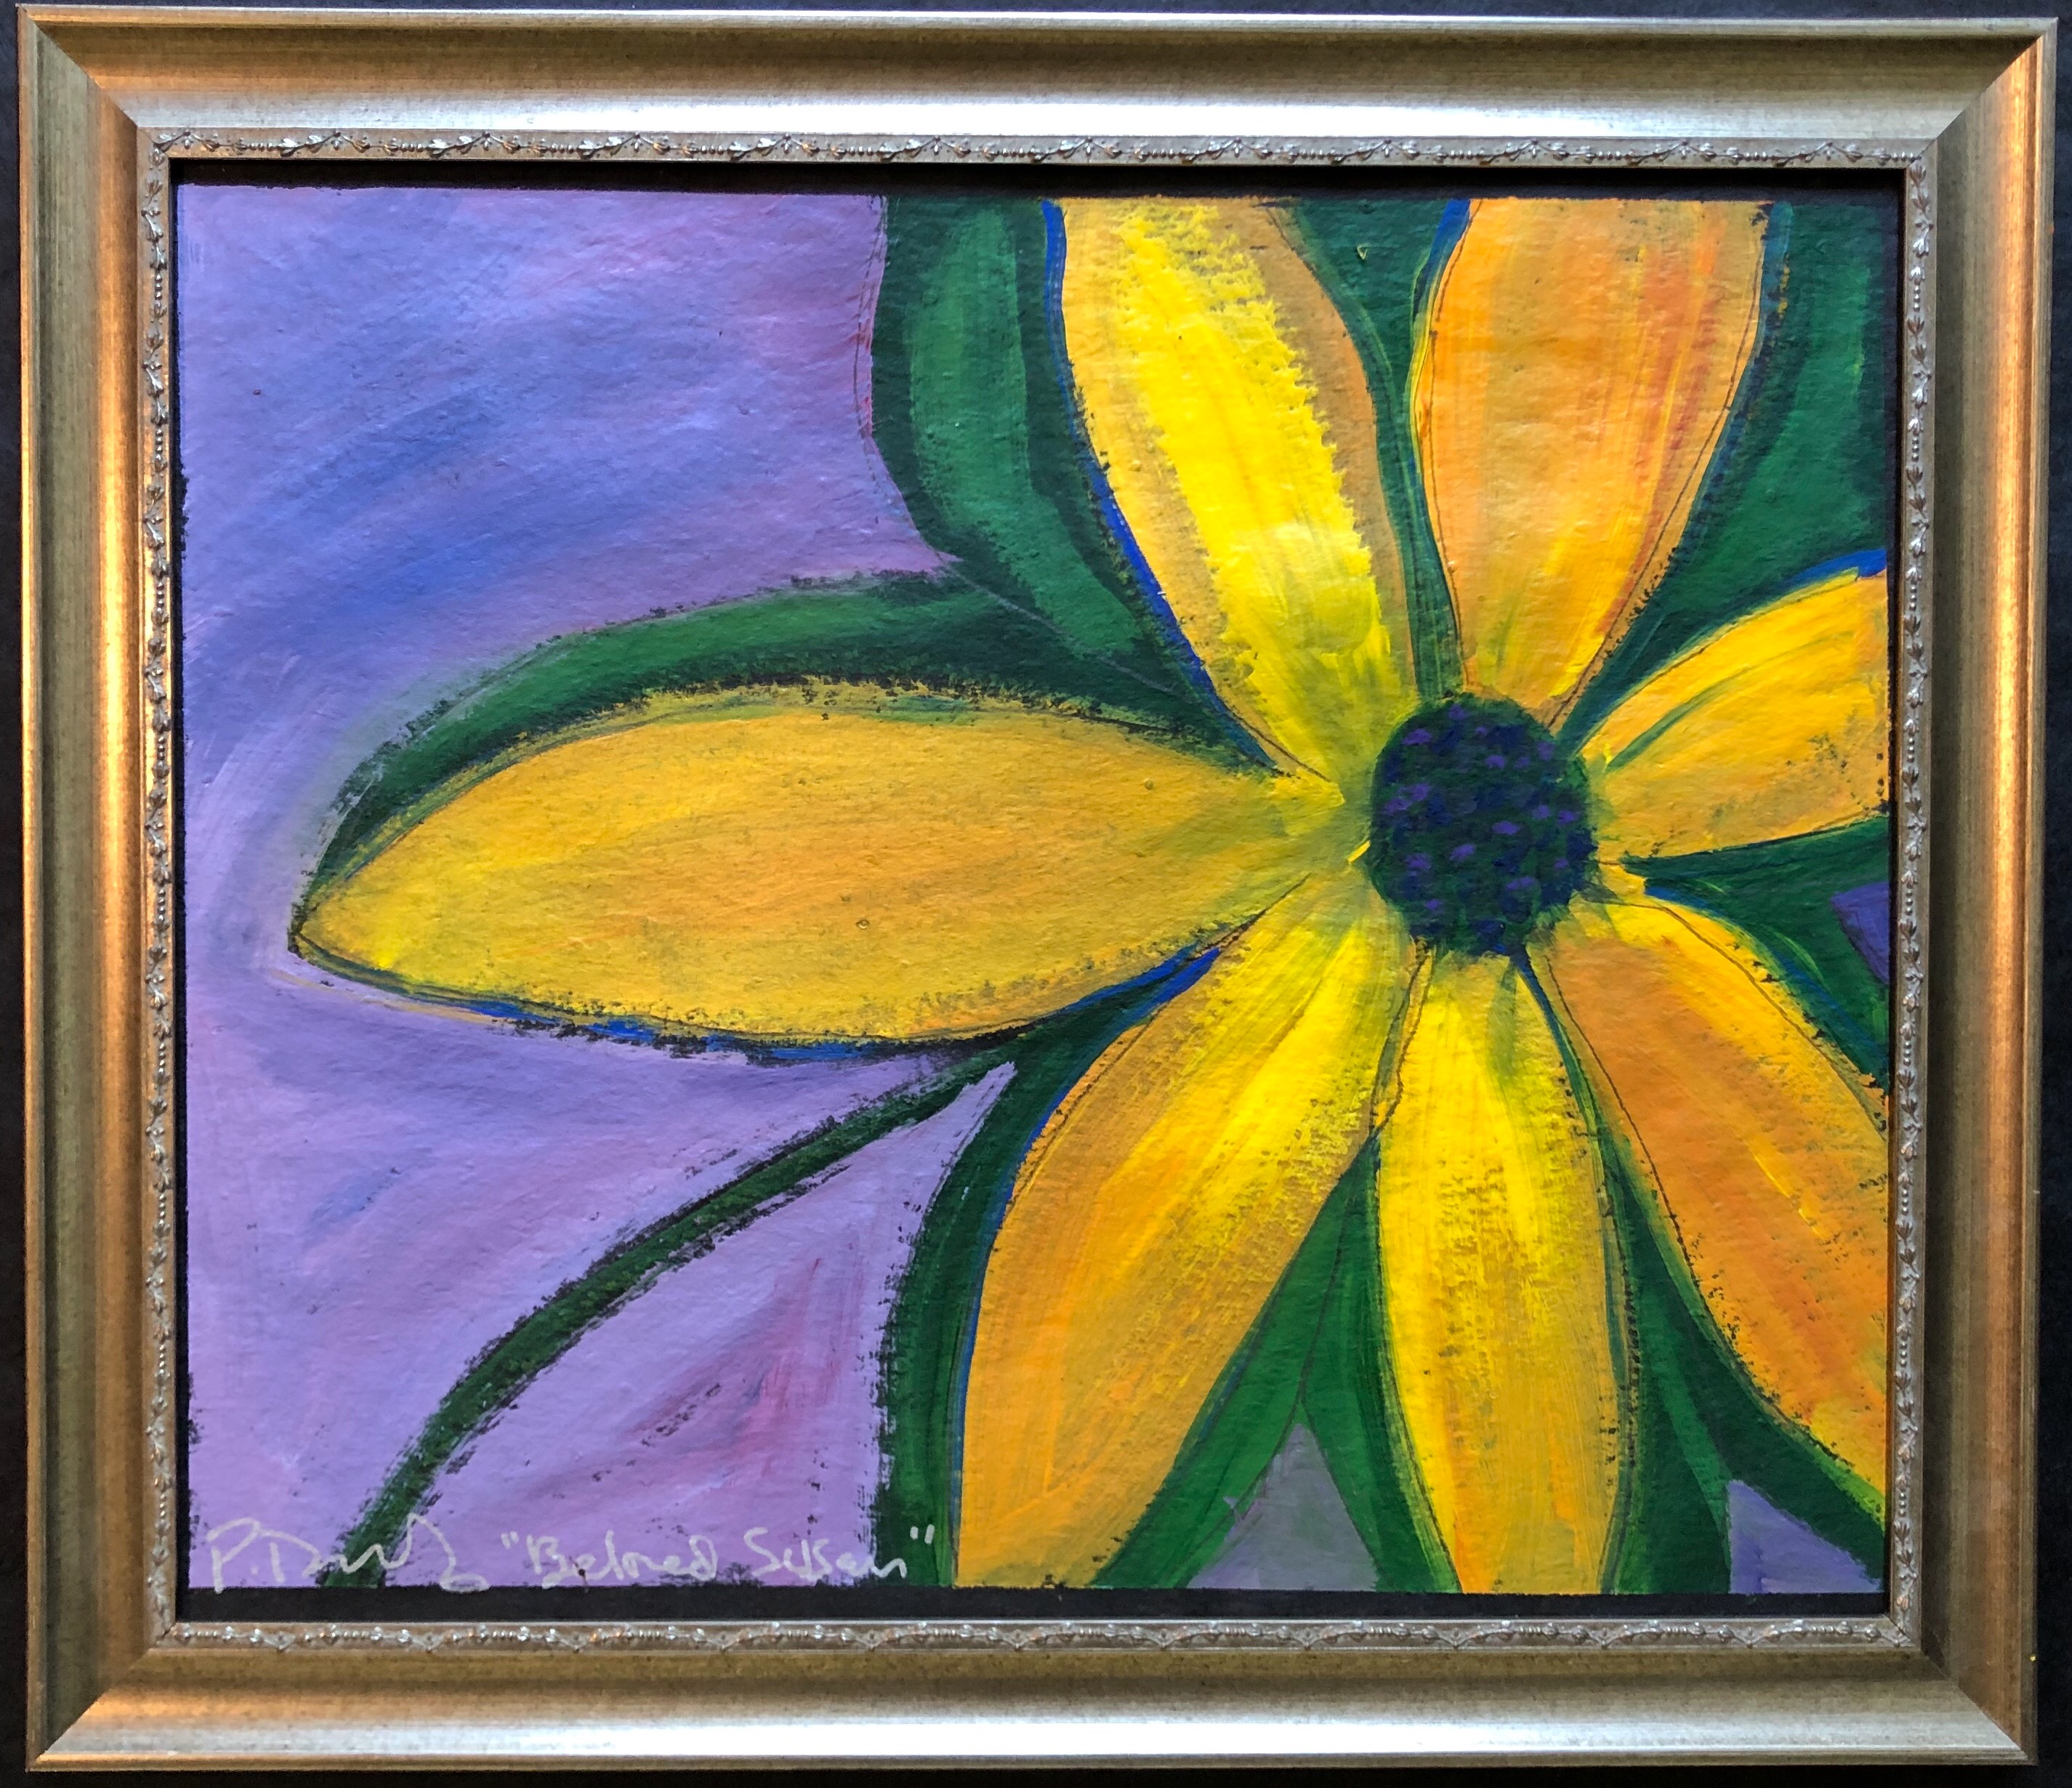 Original painting honoring the Maryland state flower